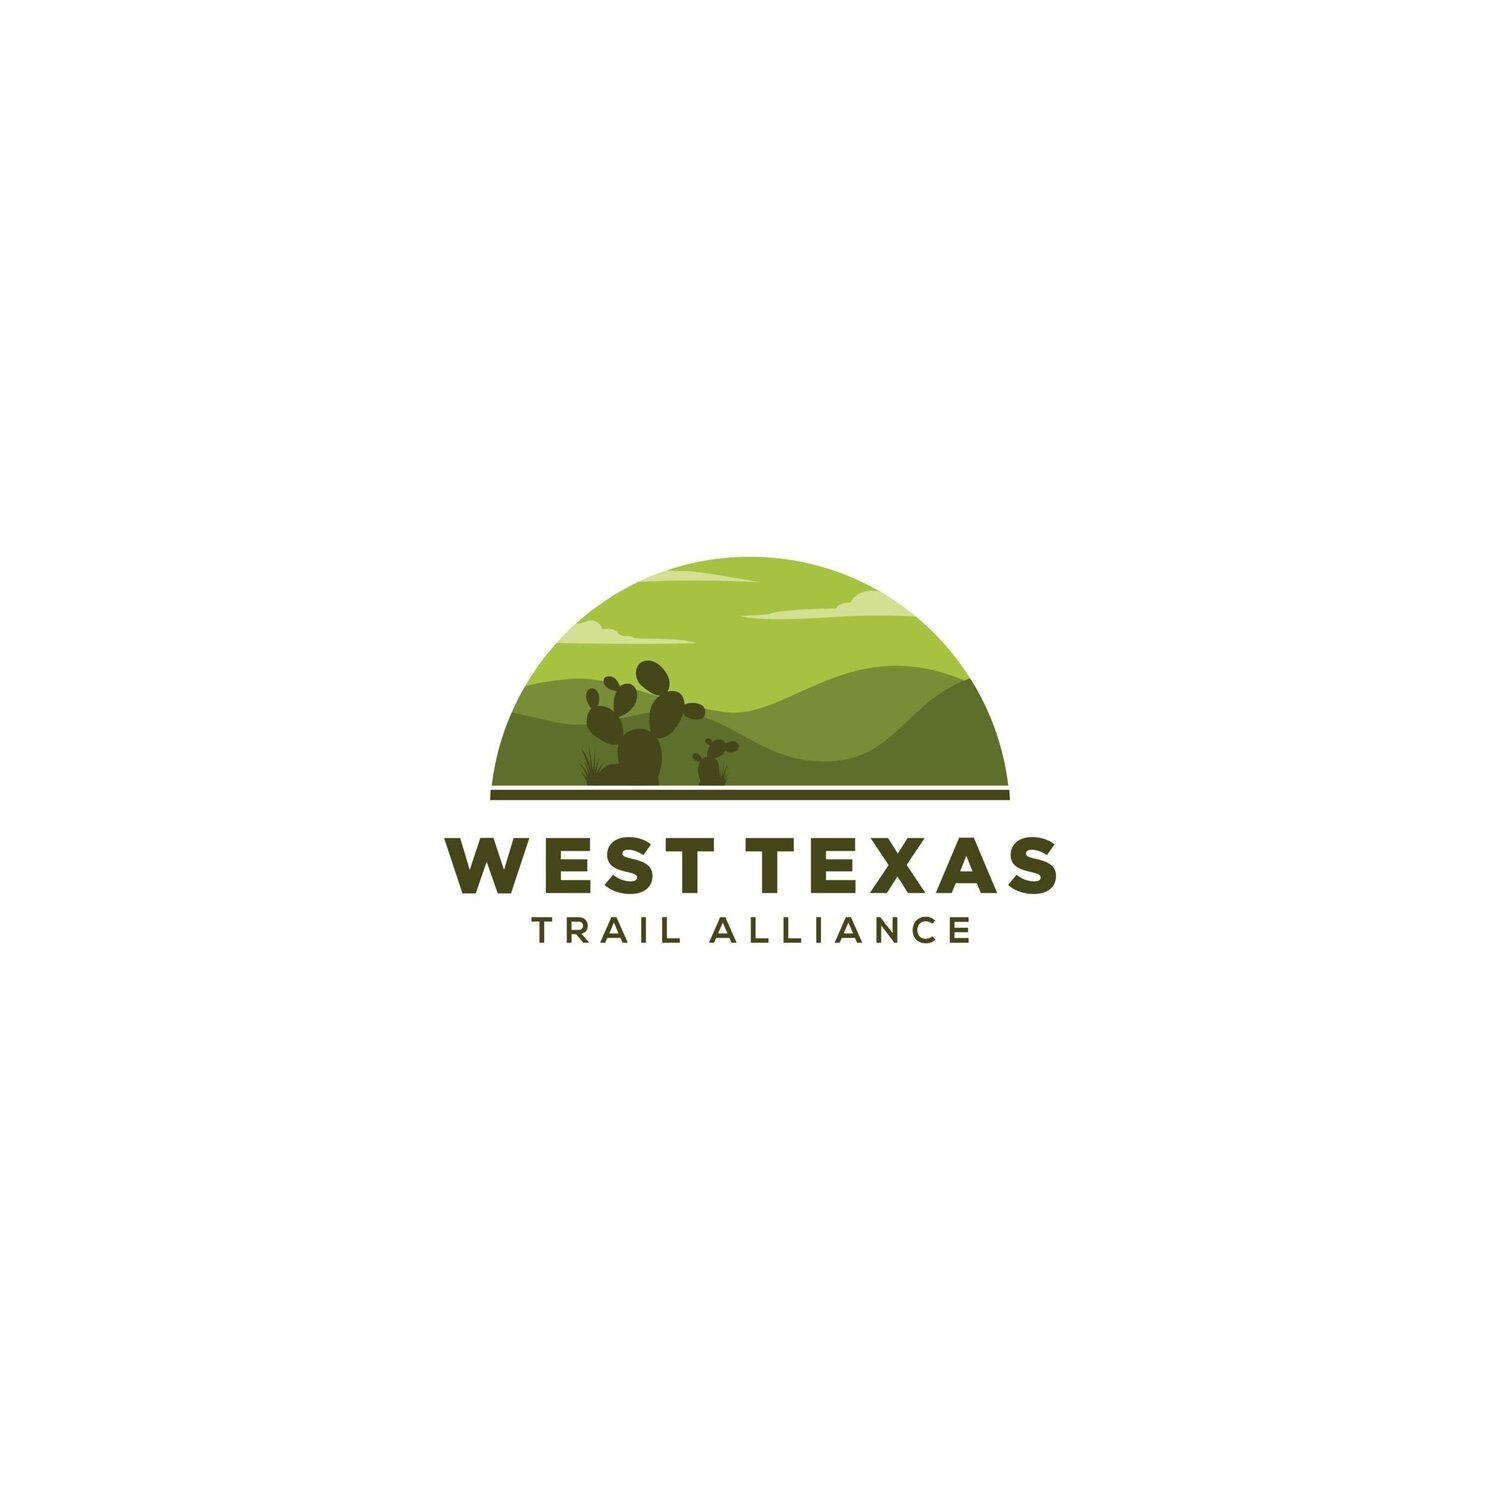 West Texas Trail Alliance